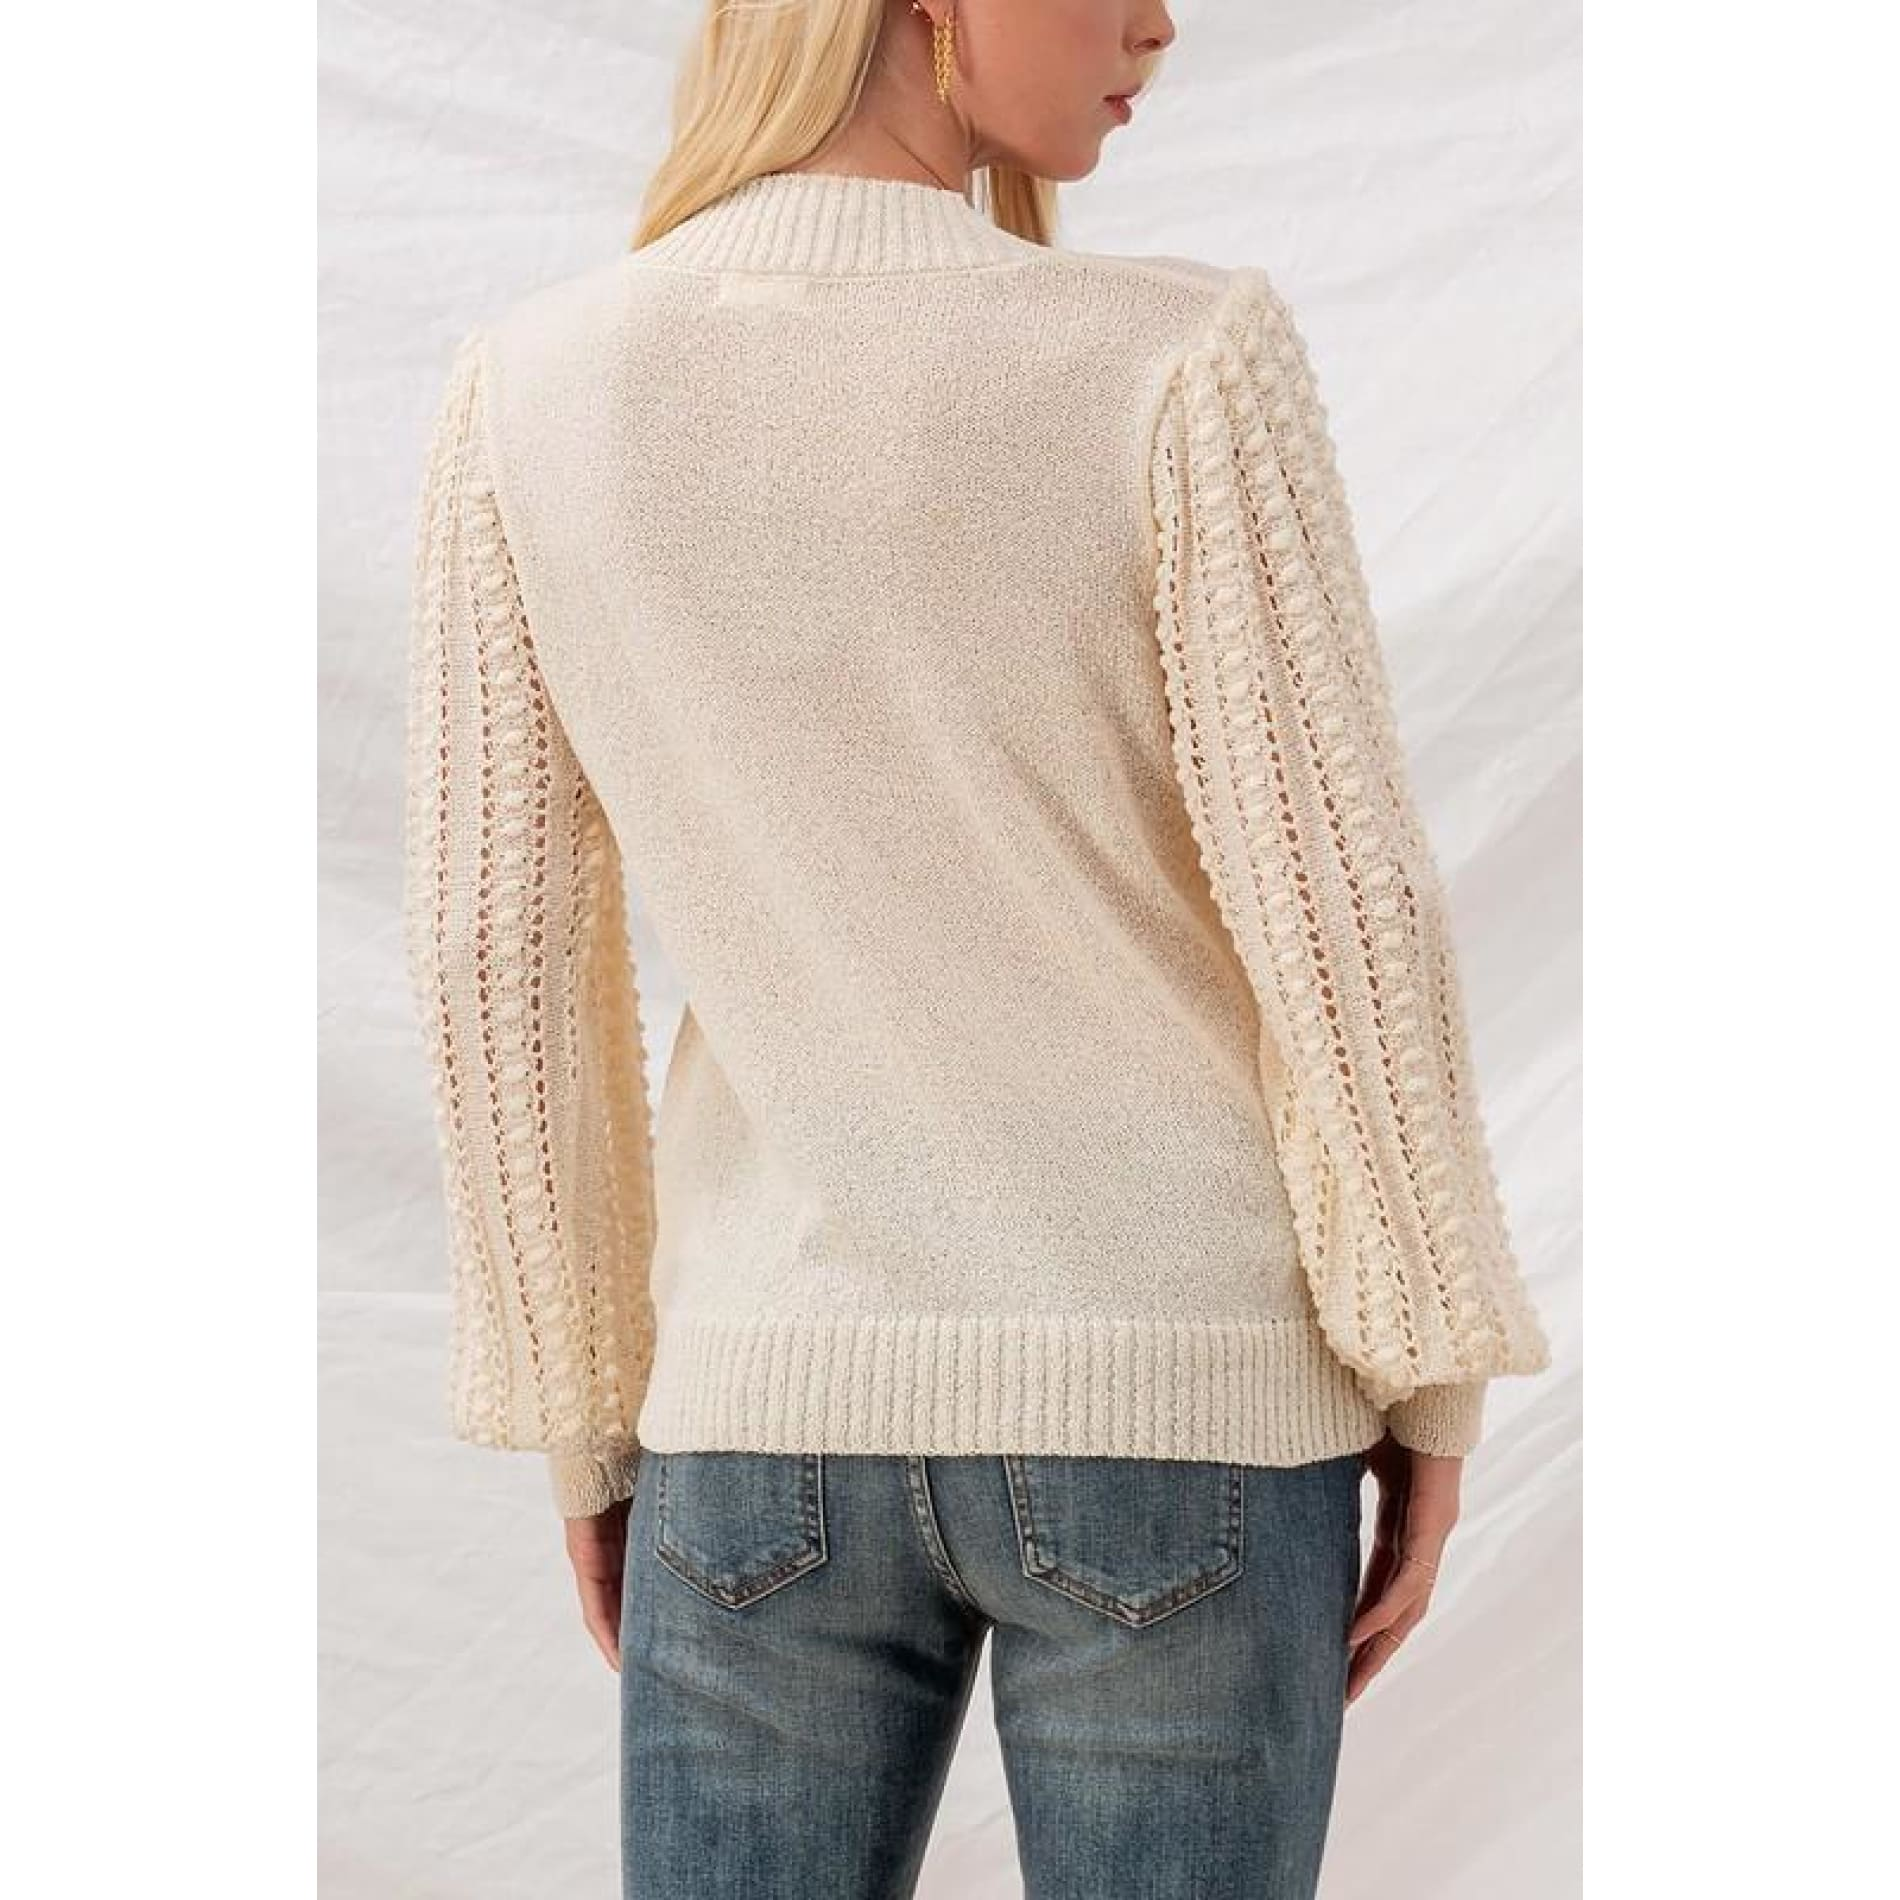 Sweet Pea Sweater - Sweaters